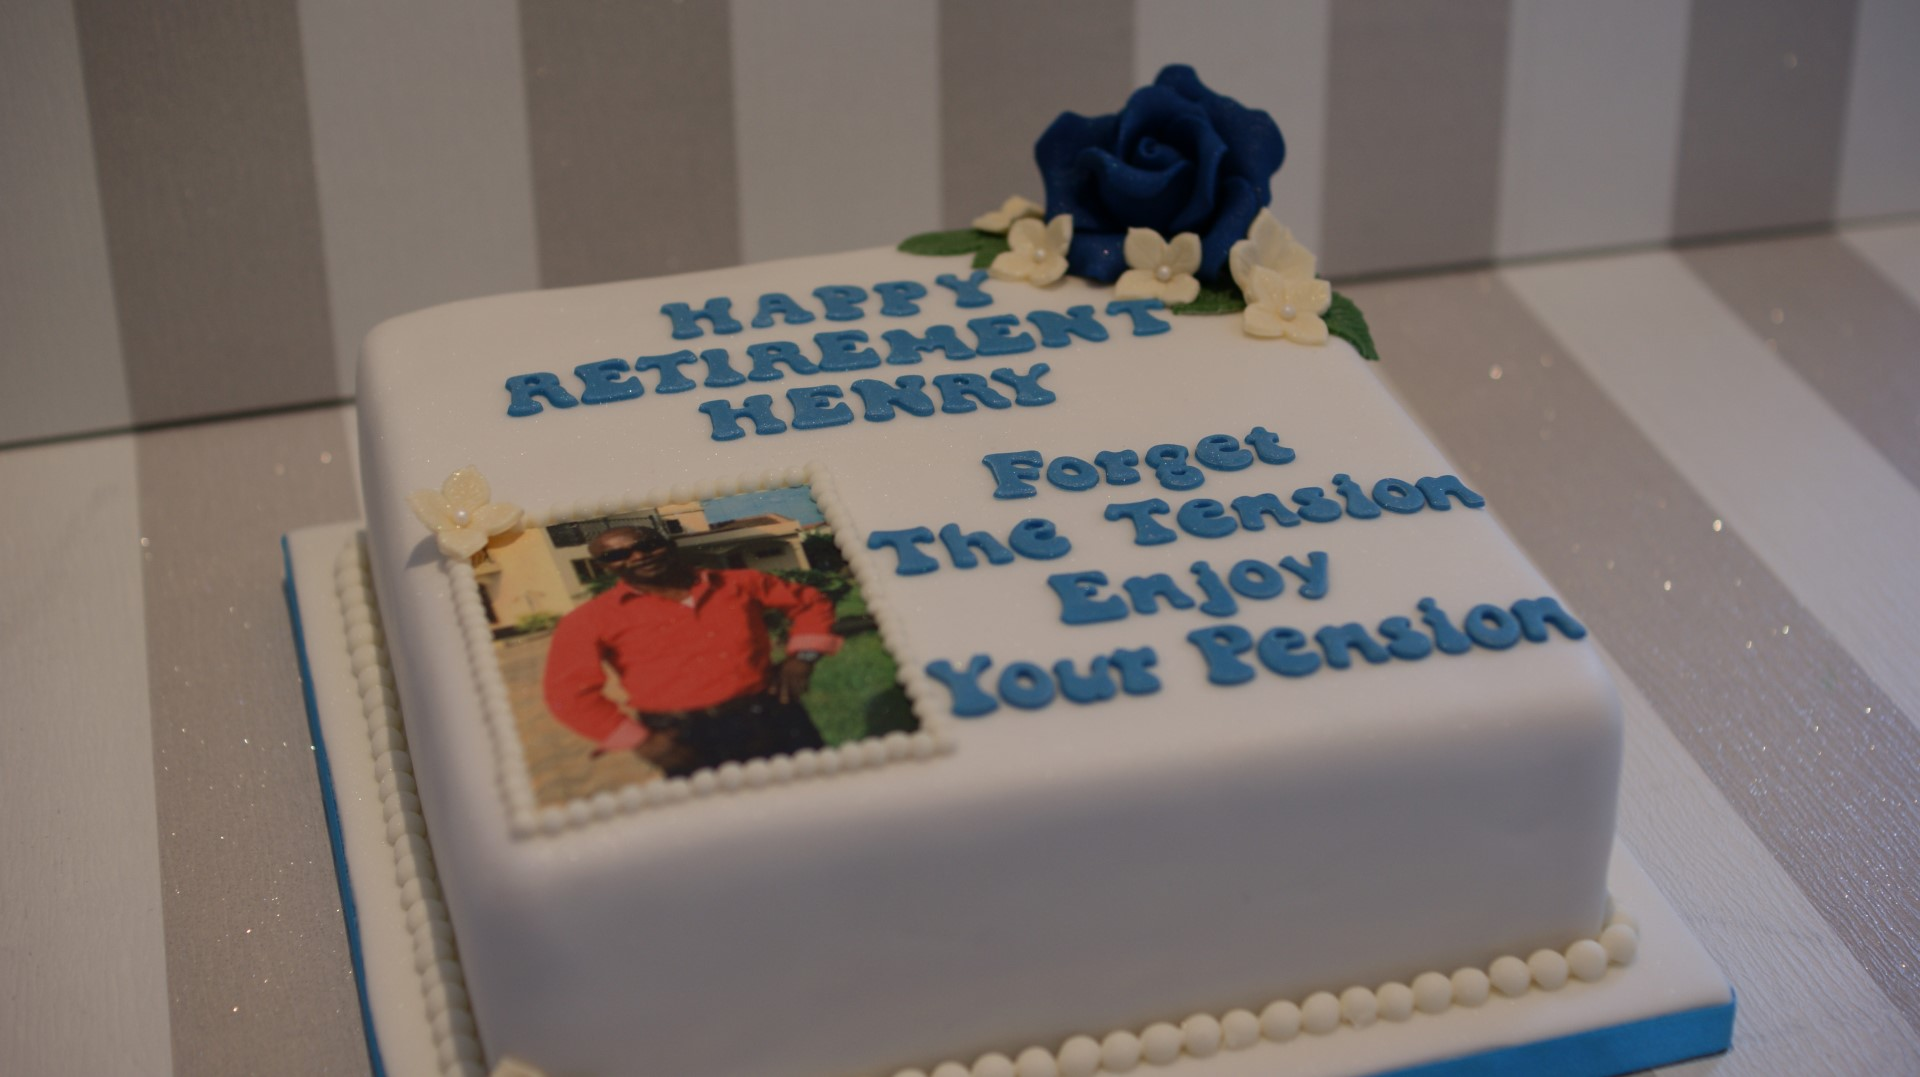 Personalised Birthday Cake With Photograph Forget The Tension Enjoy Your Pension 1